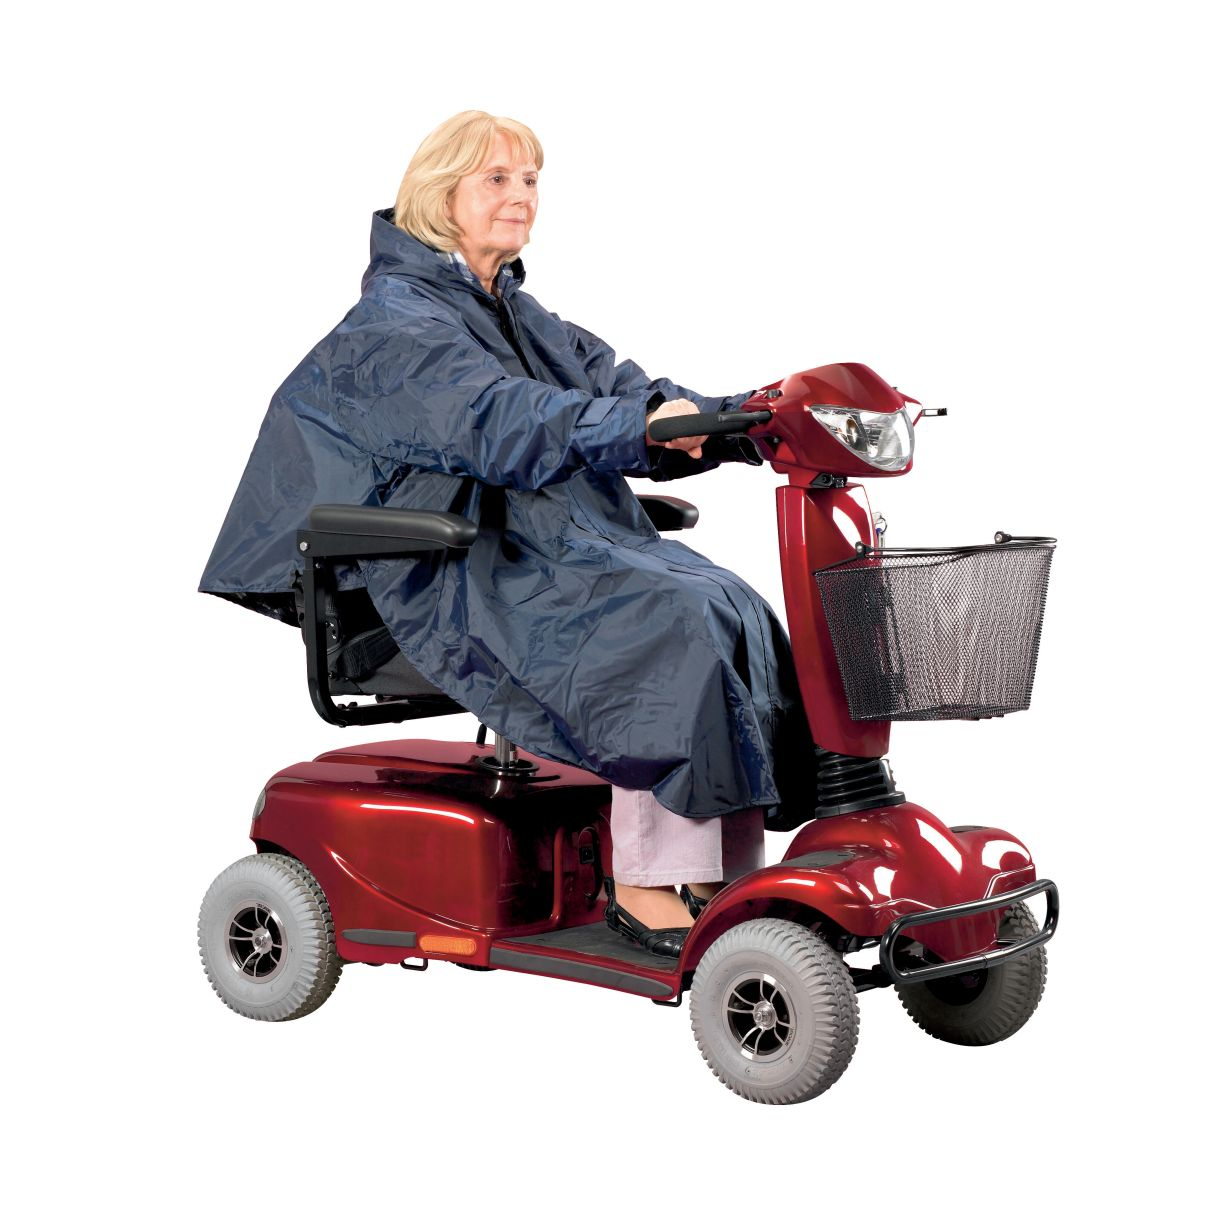 Scooter Clothing Poncho Lined The Mobility Centre